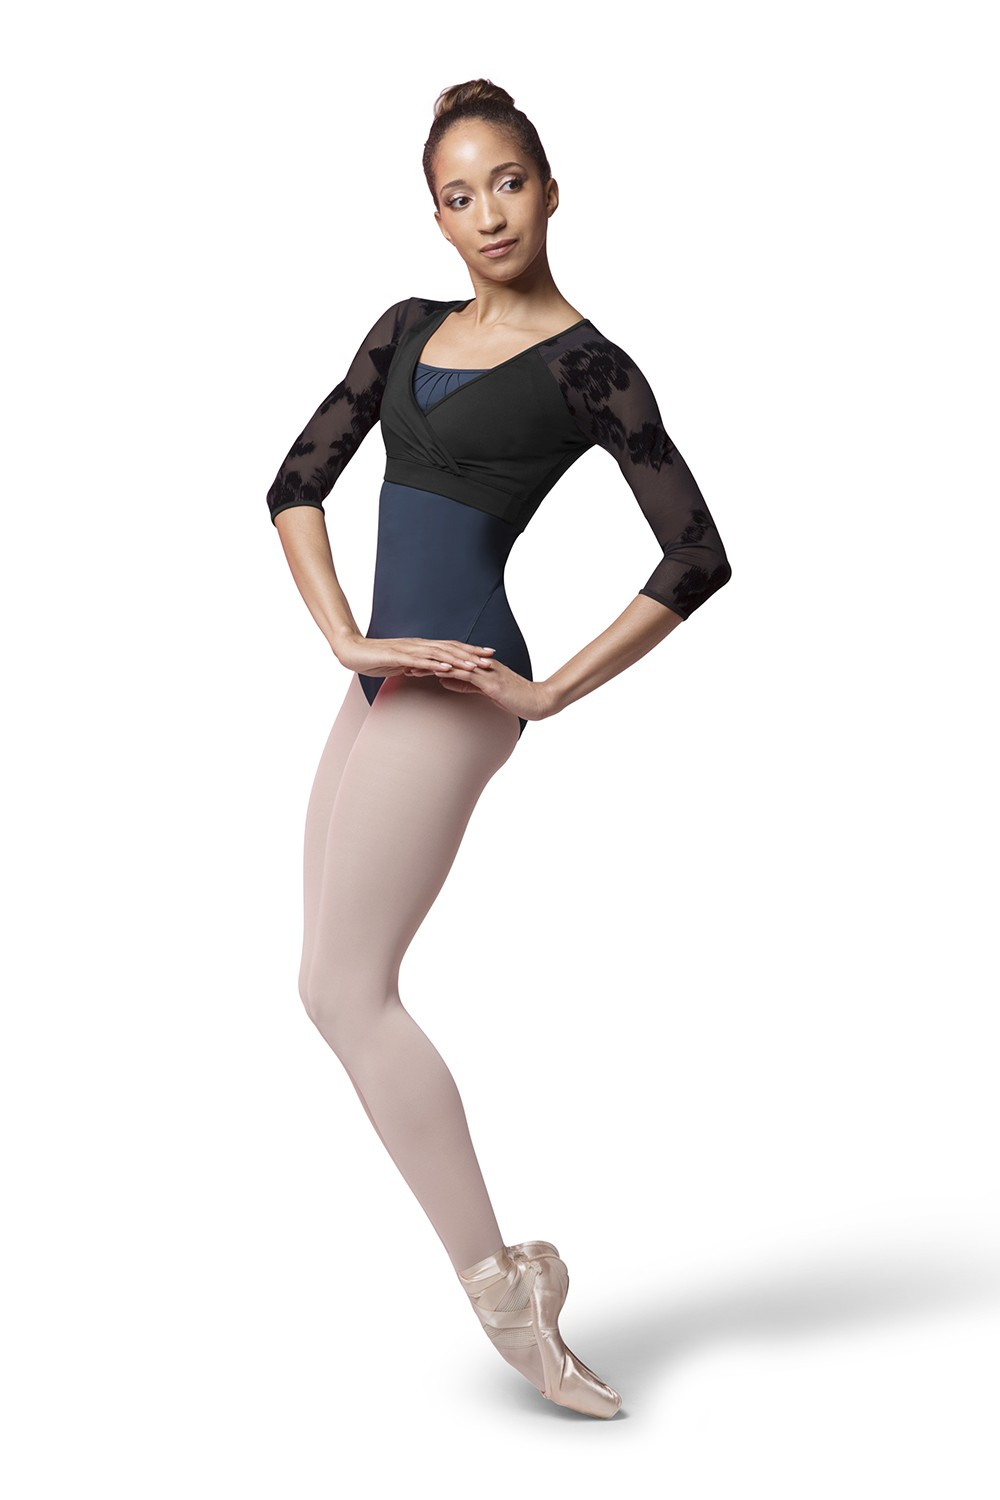 Flocked Mesh Top Women's Dance Tops